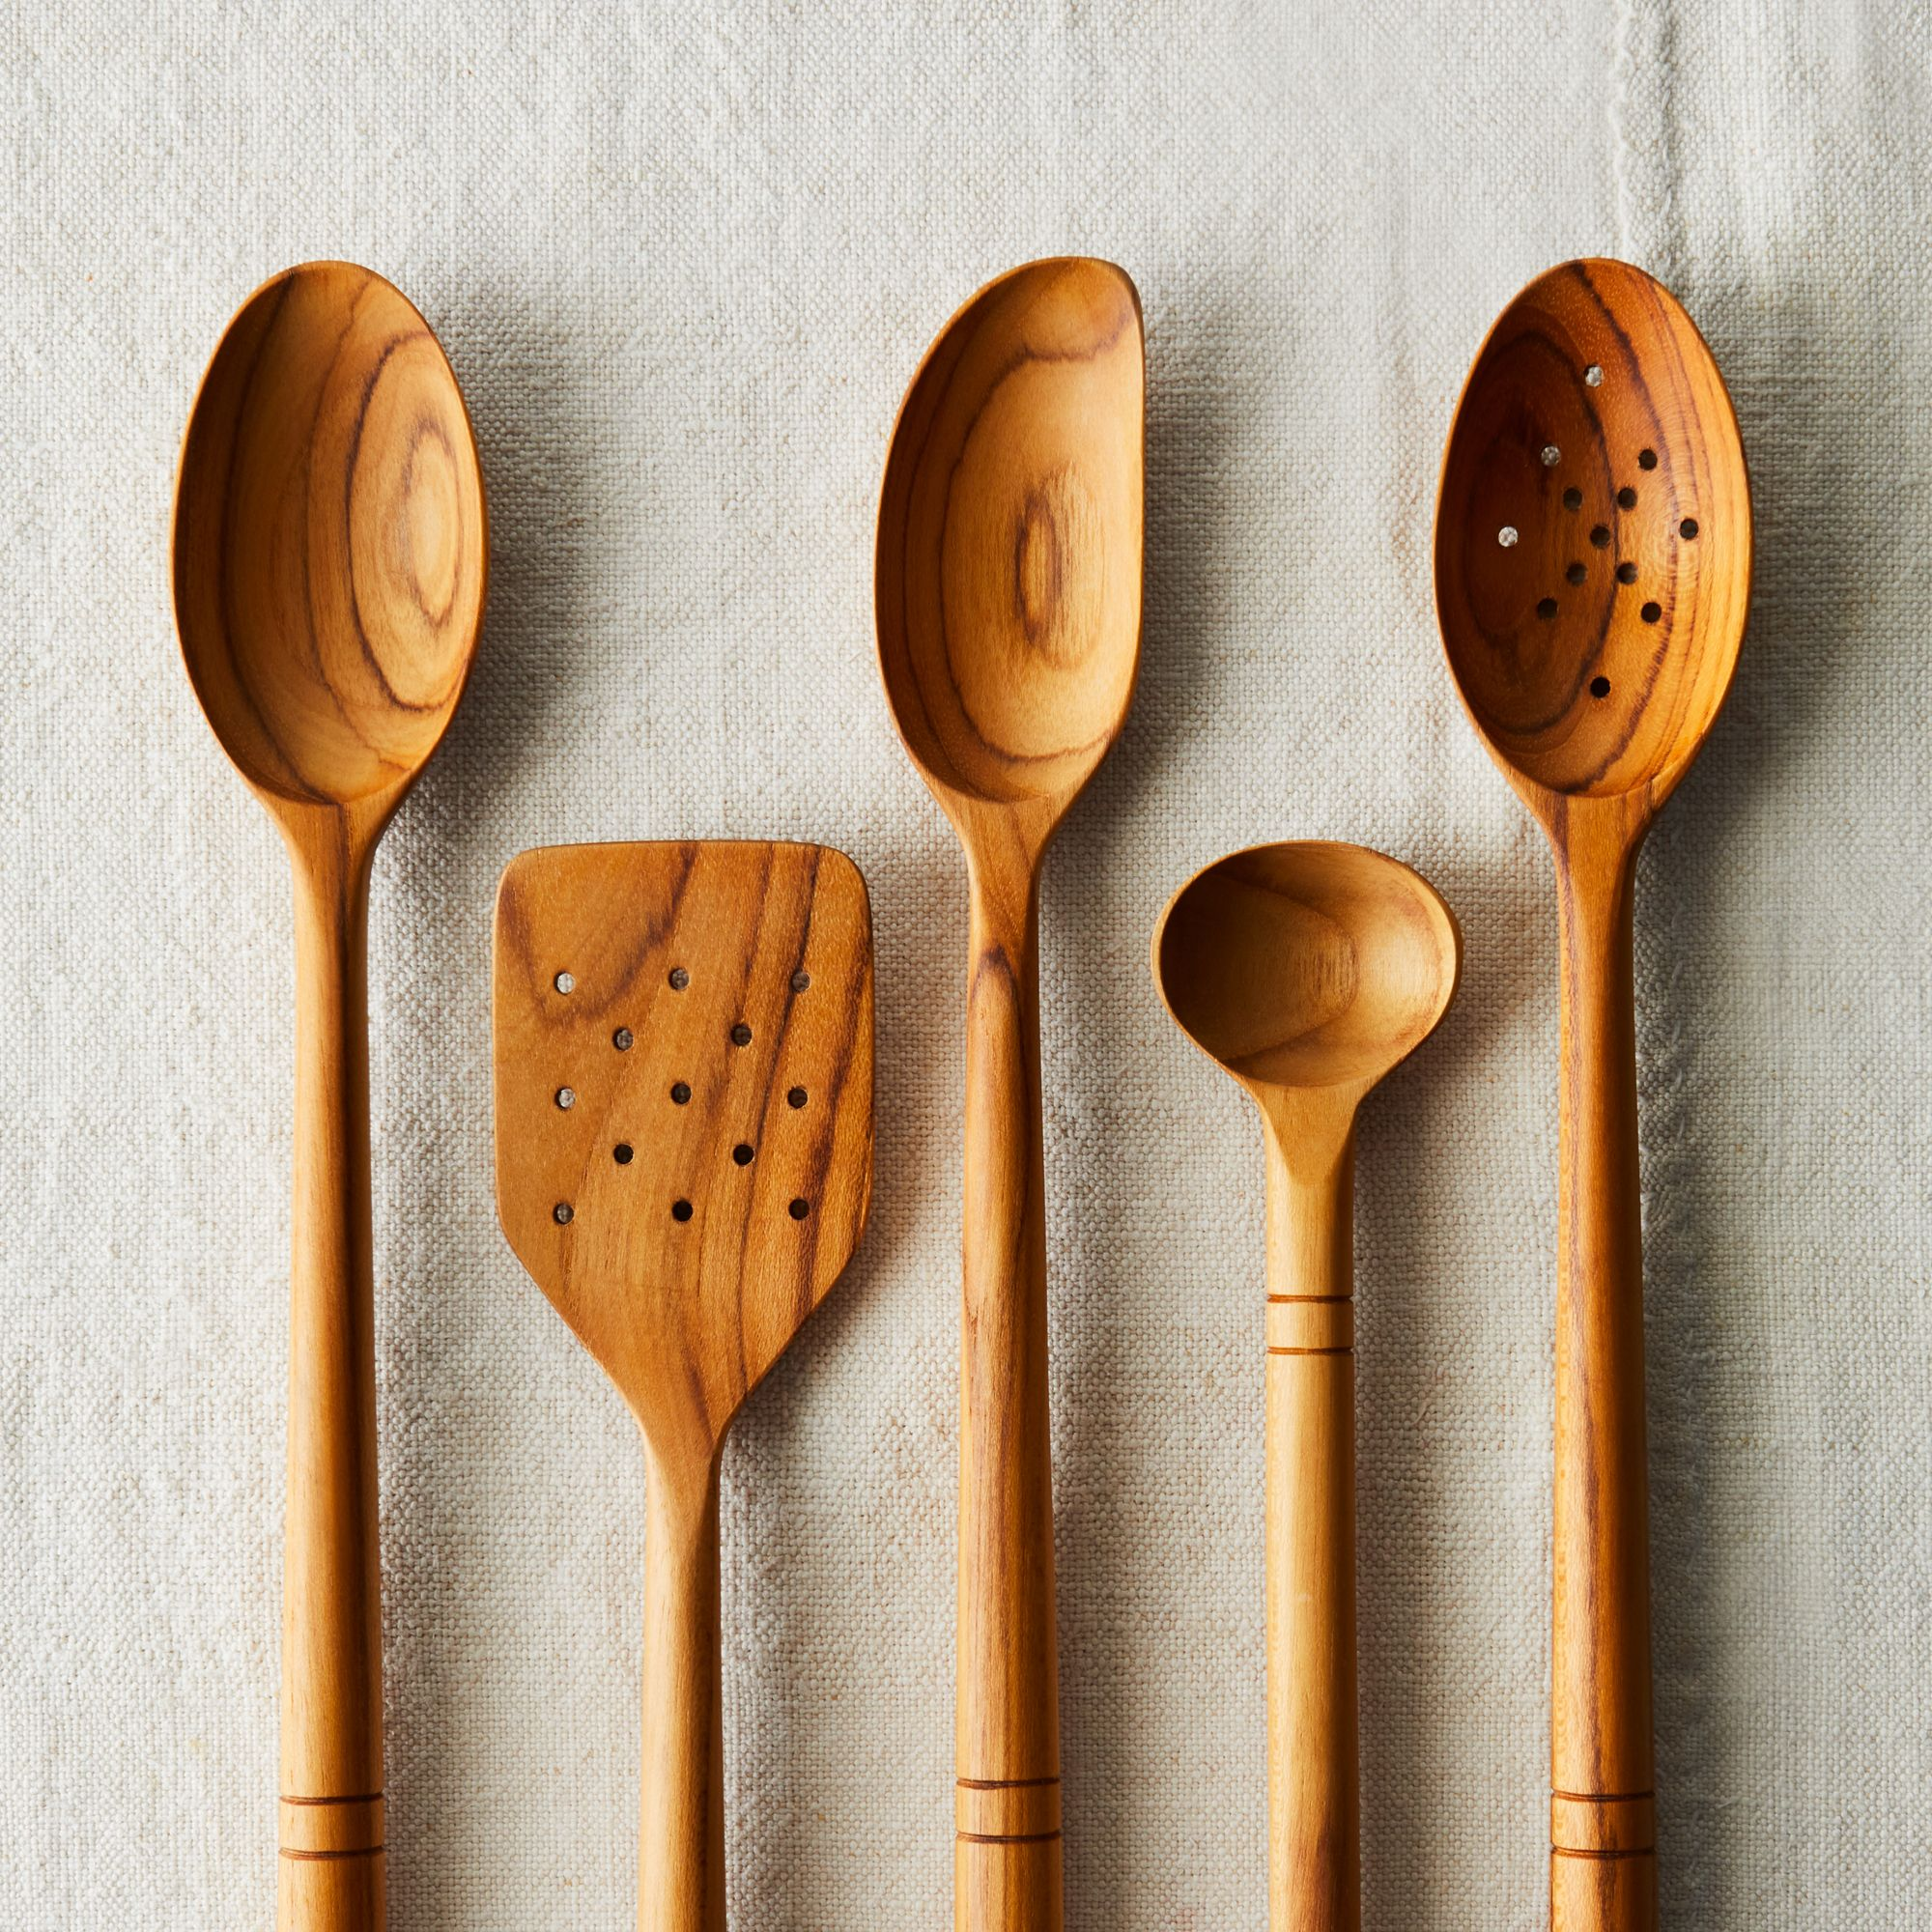 Buy wooden spoons on food52.com